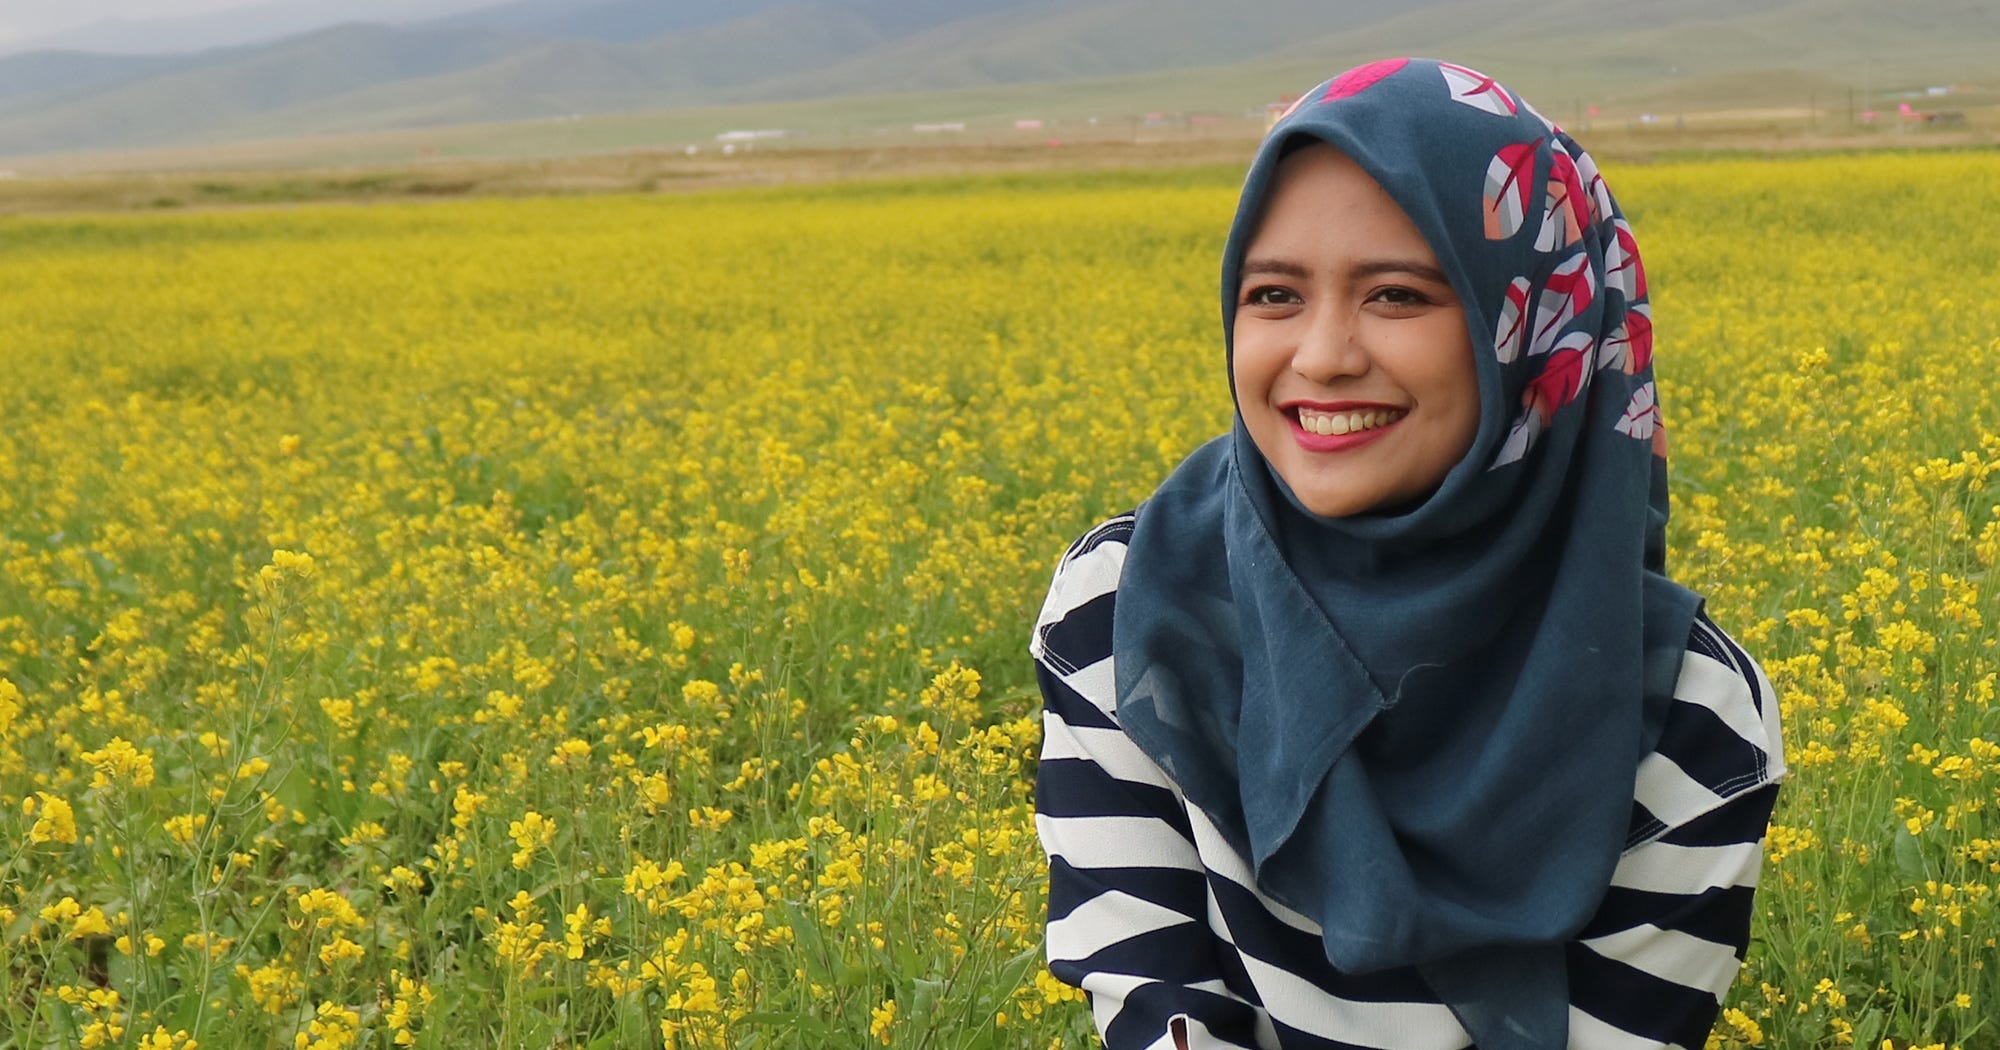 elizaville muslim girl personals Muslim dating is not always easy – that's why elitesingles is here to help meet marriage-minded single muslims and find your match here.